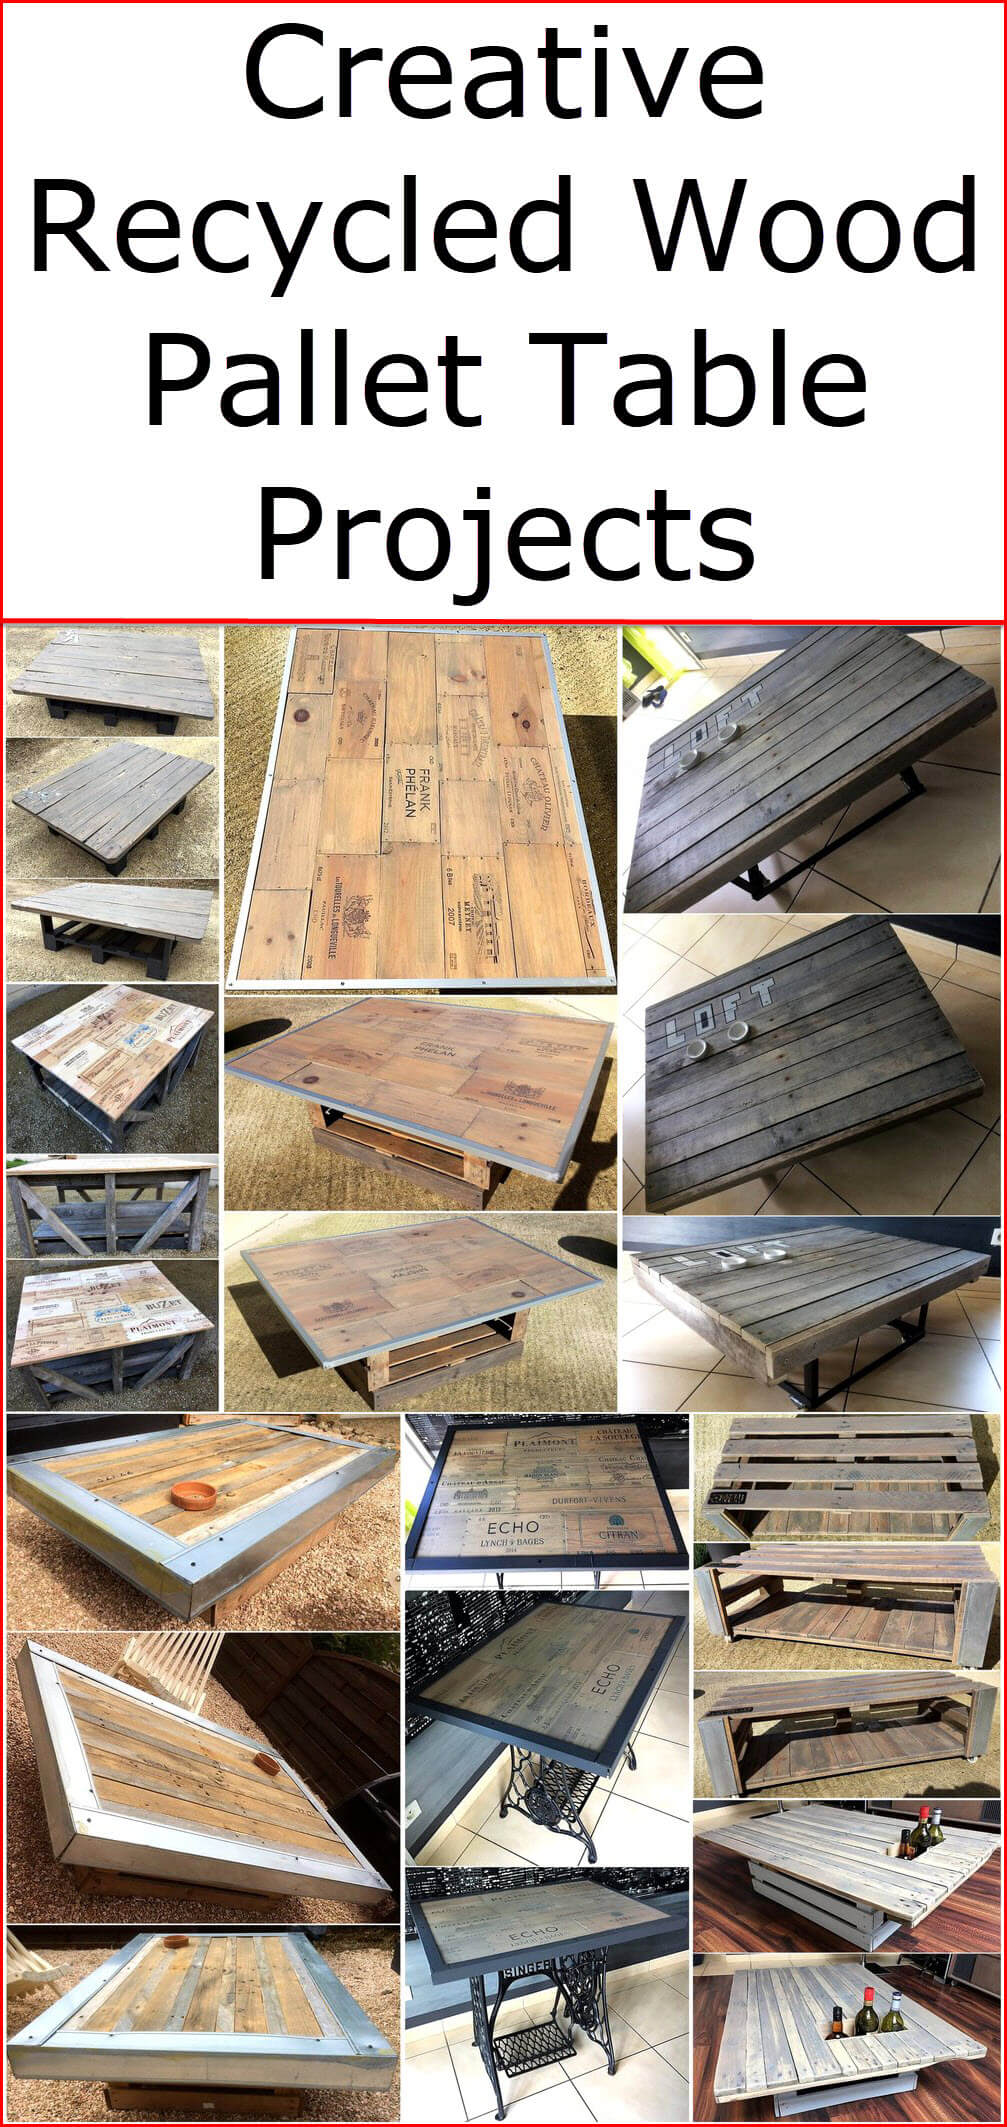 Creative Recycled Wood Pallet Table Projects